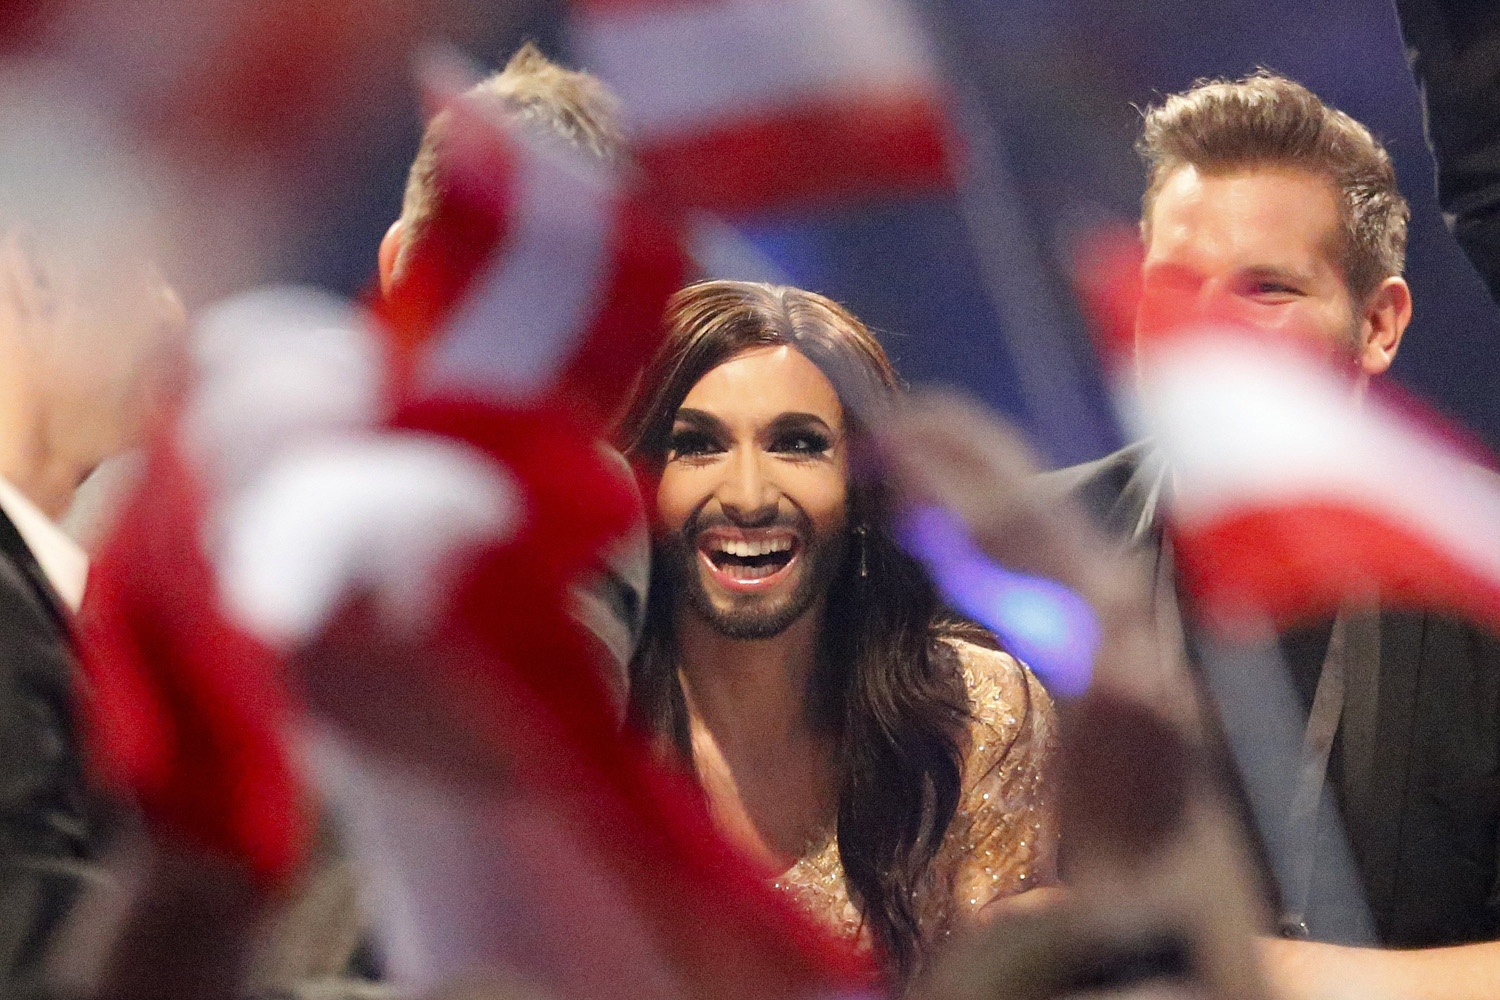 Singer Conchita Wurst representing Austria who performed the song 'Rise Like a Phoenix'  listens as points are announced during the judging at the final of the Eurovision Song Contest  in the B&W Halls in Copenhagen, on May 10, 2014.